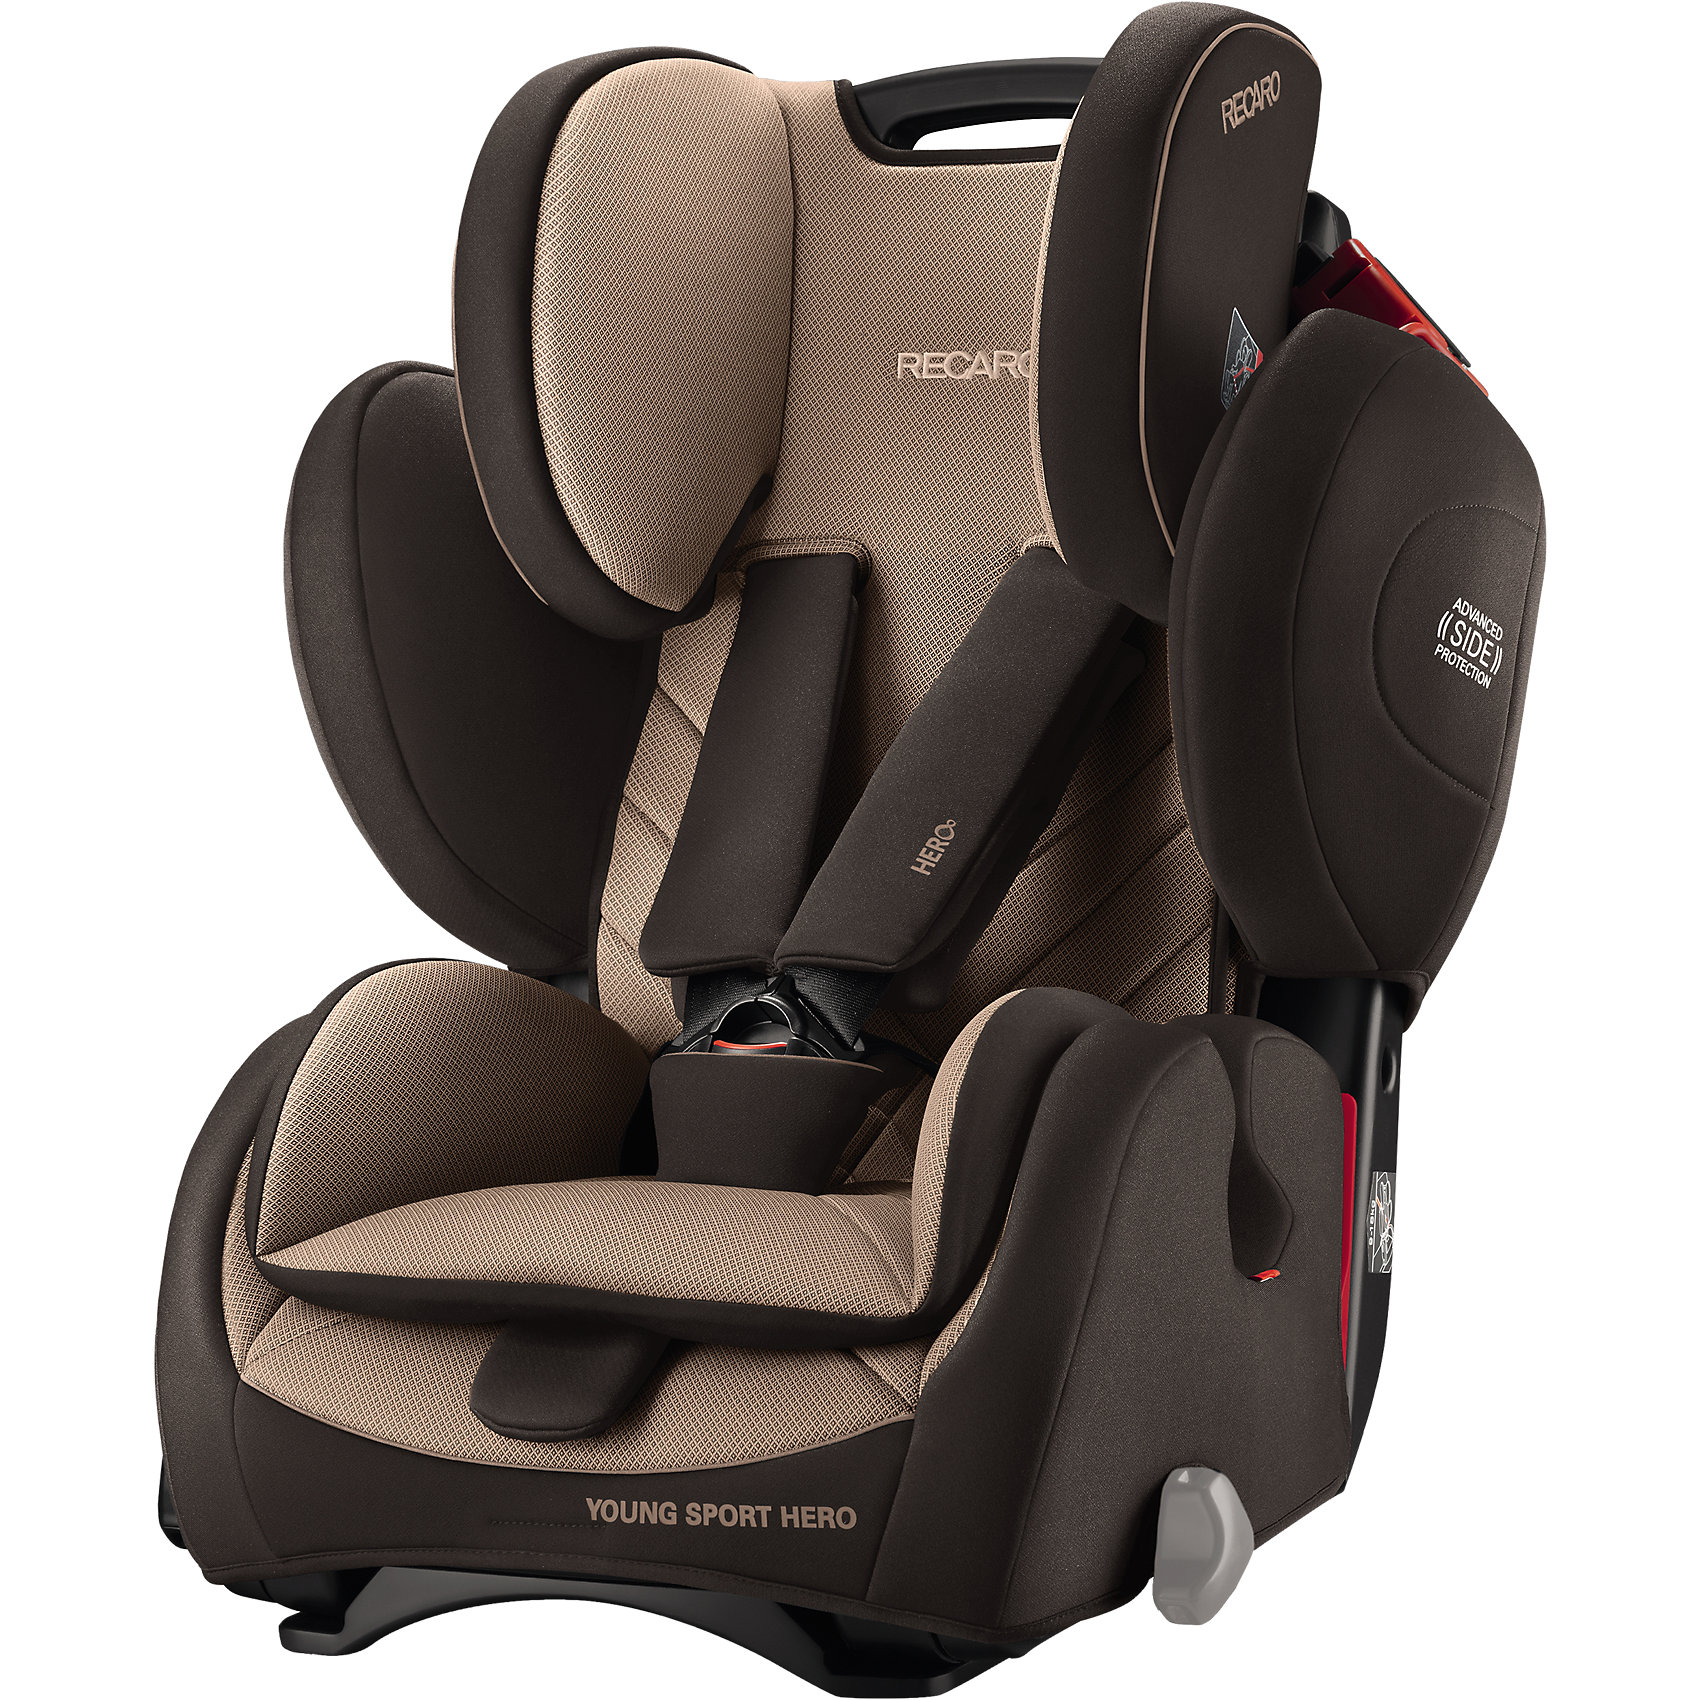 ���������� Young Sport Hero,  9-36 ��, Recaro, dakar send (RECARO)